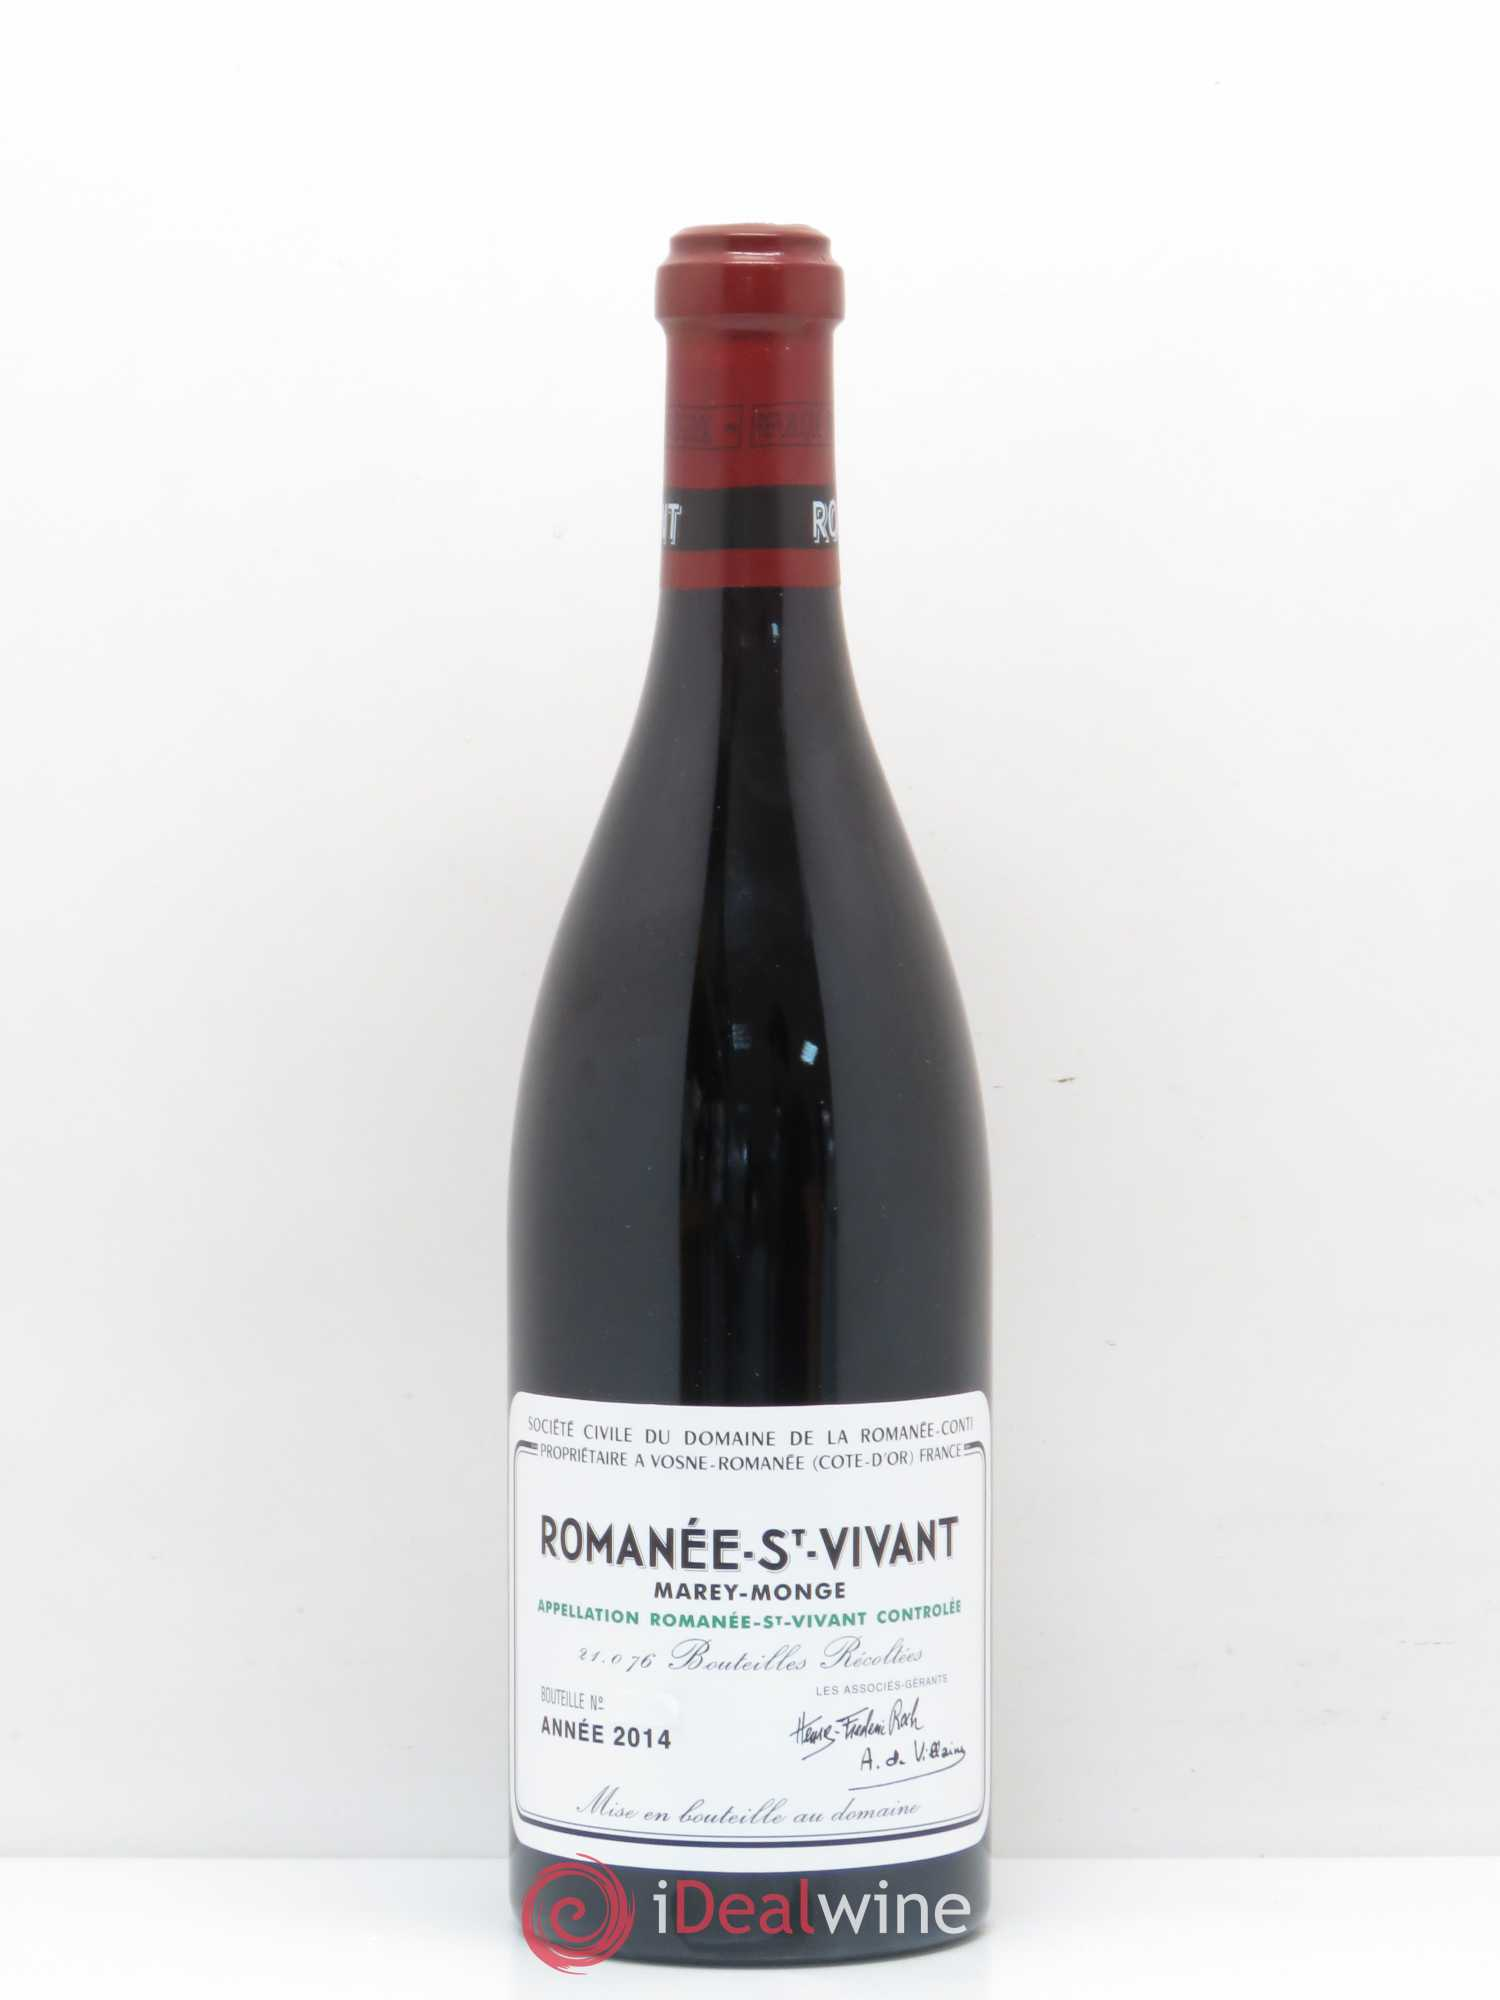 Romanée-Saint-Vivant Grand Cru Domaine de la Romanée-Conti  2014 - Lot of 1 Bottle